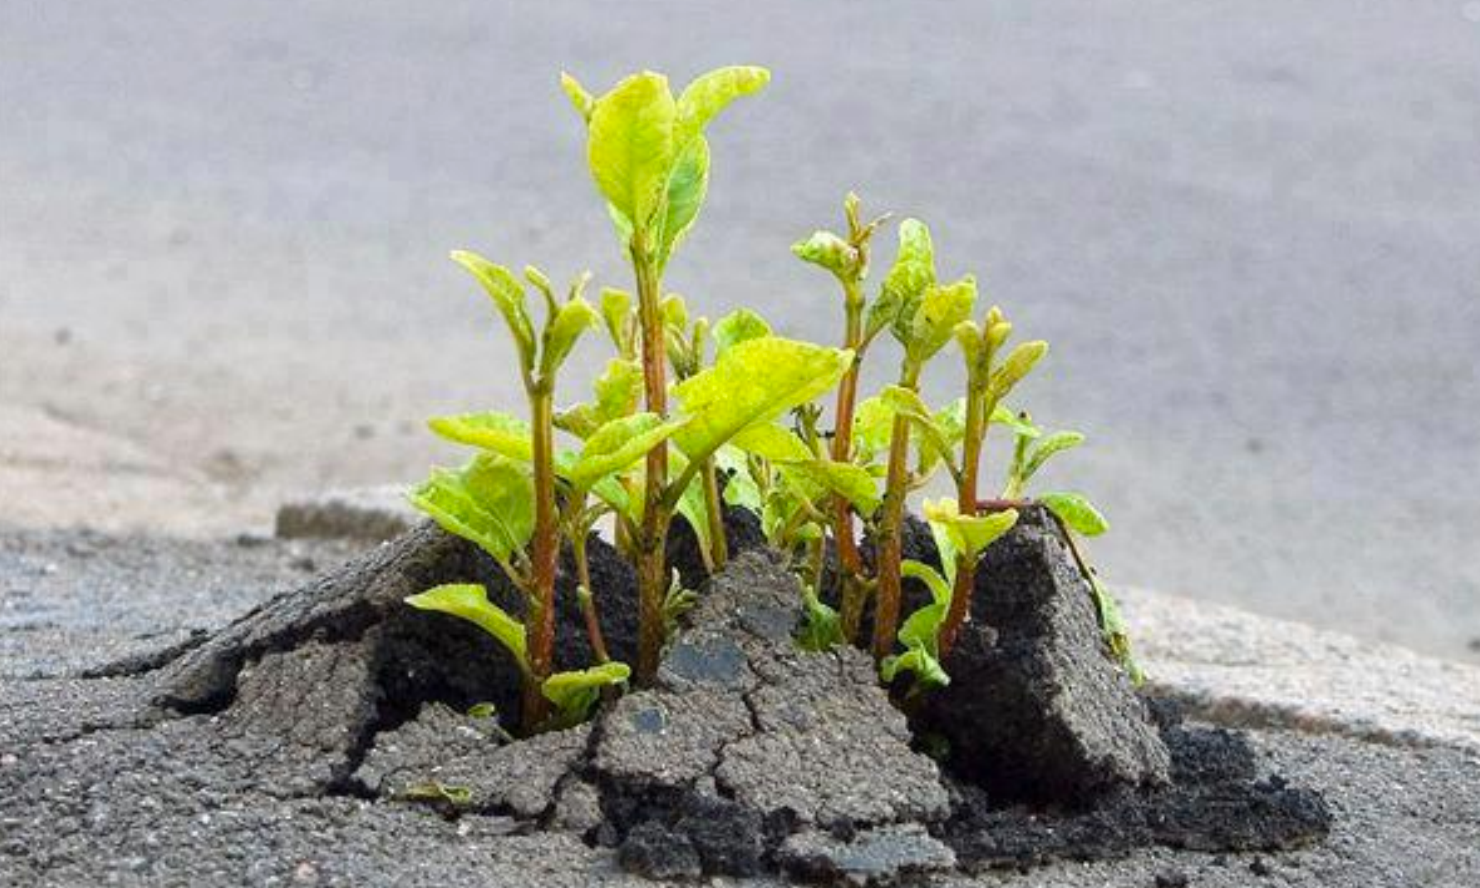 Plant breaking through pavement.jpeg